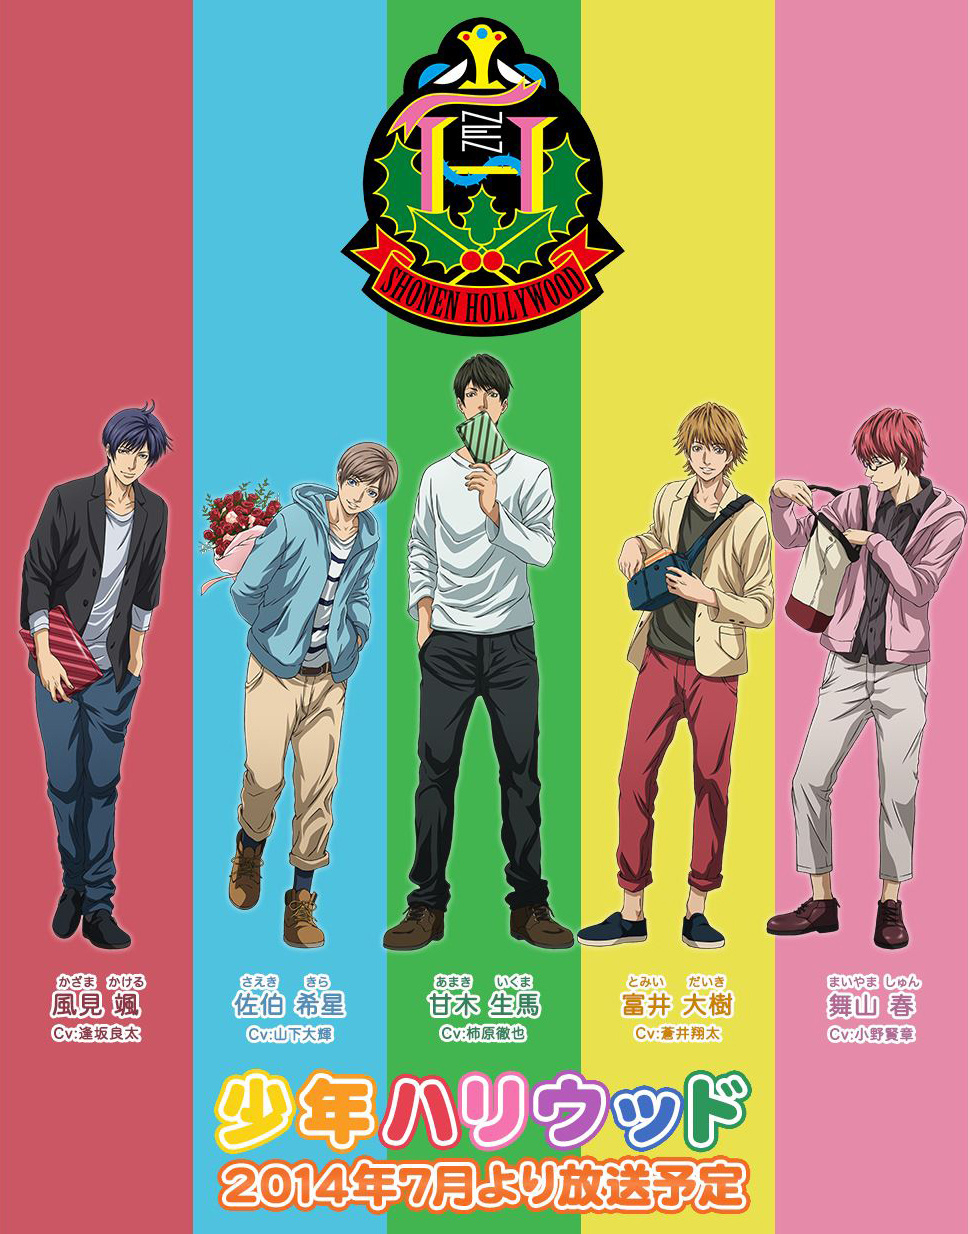 Shounen Hollywood: Holly Stage for 49 Visual 1